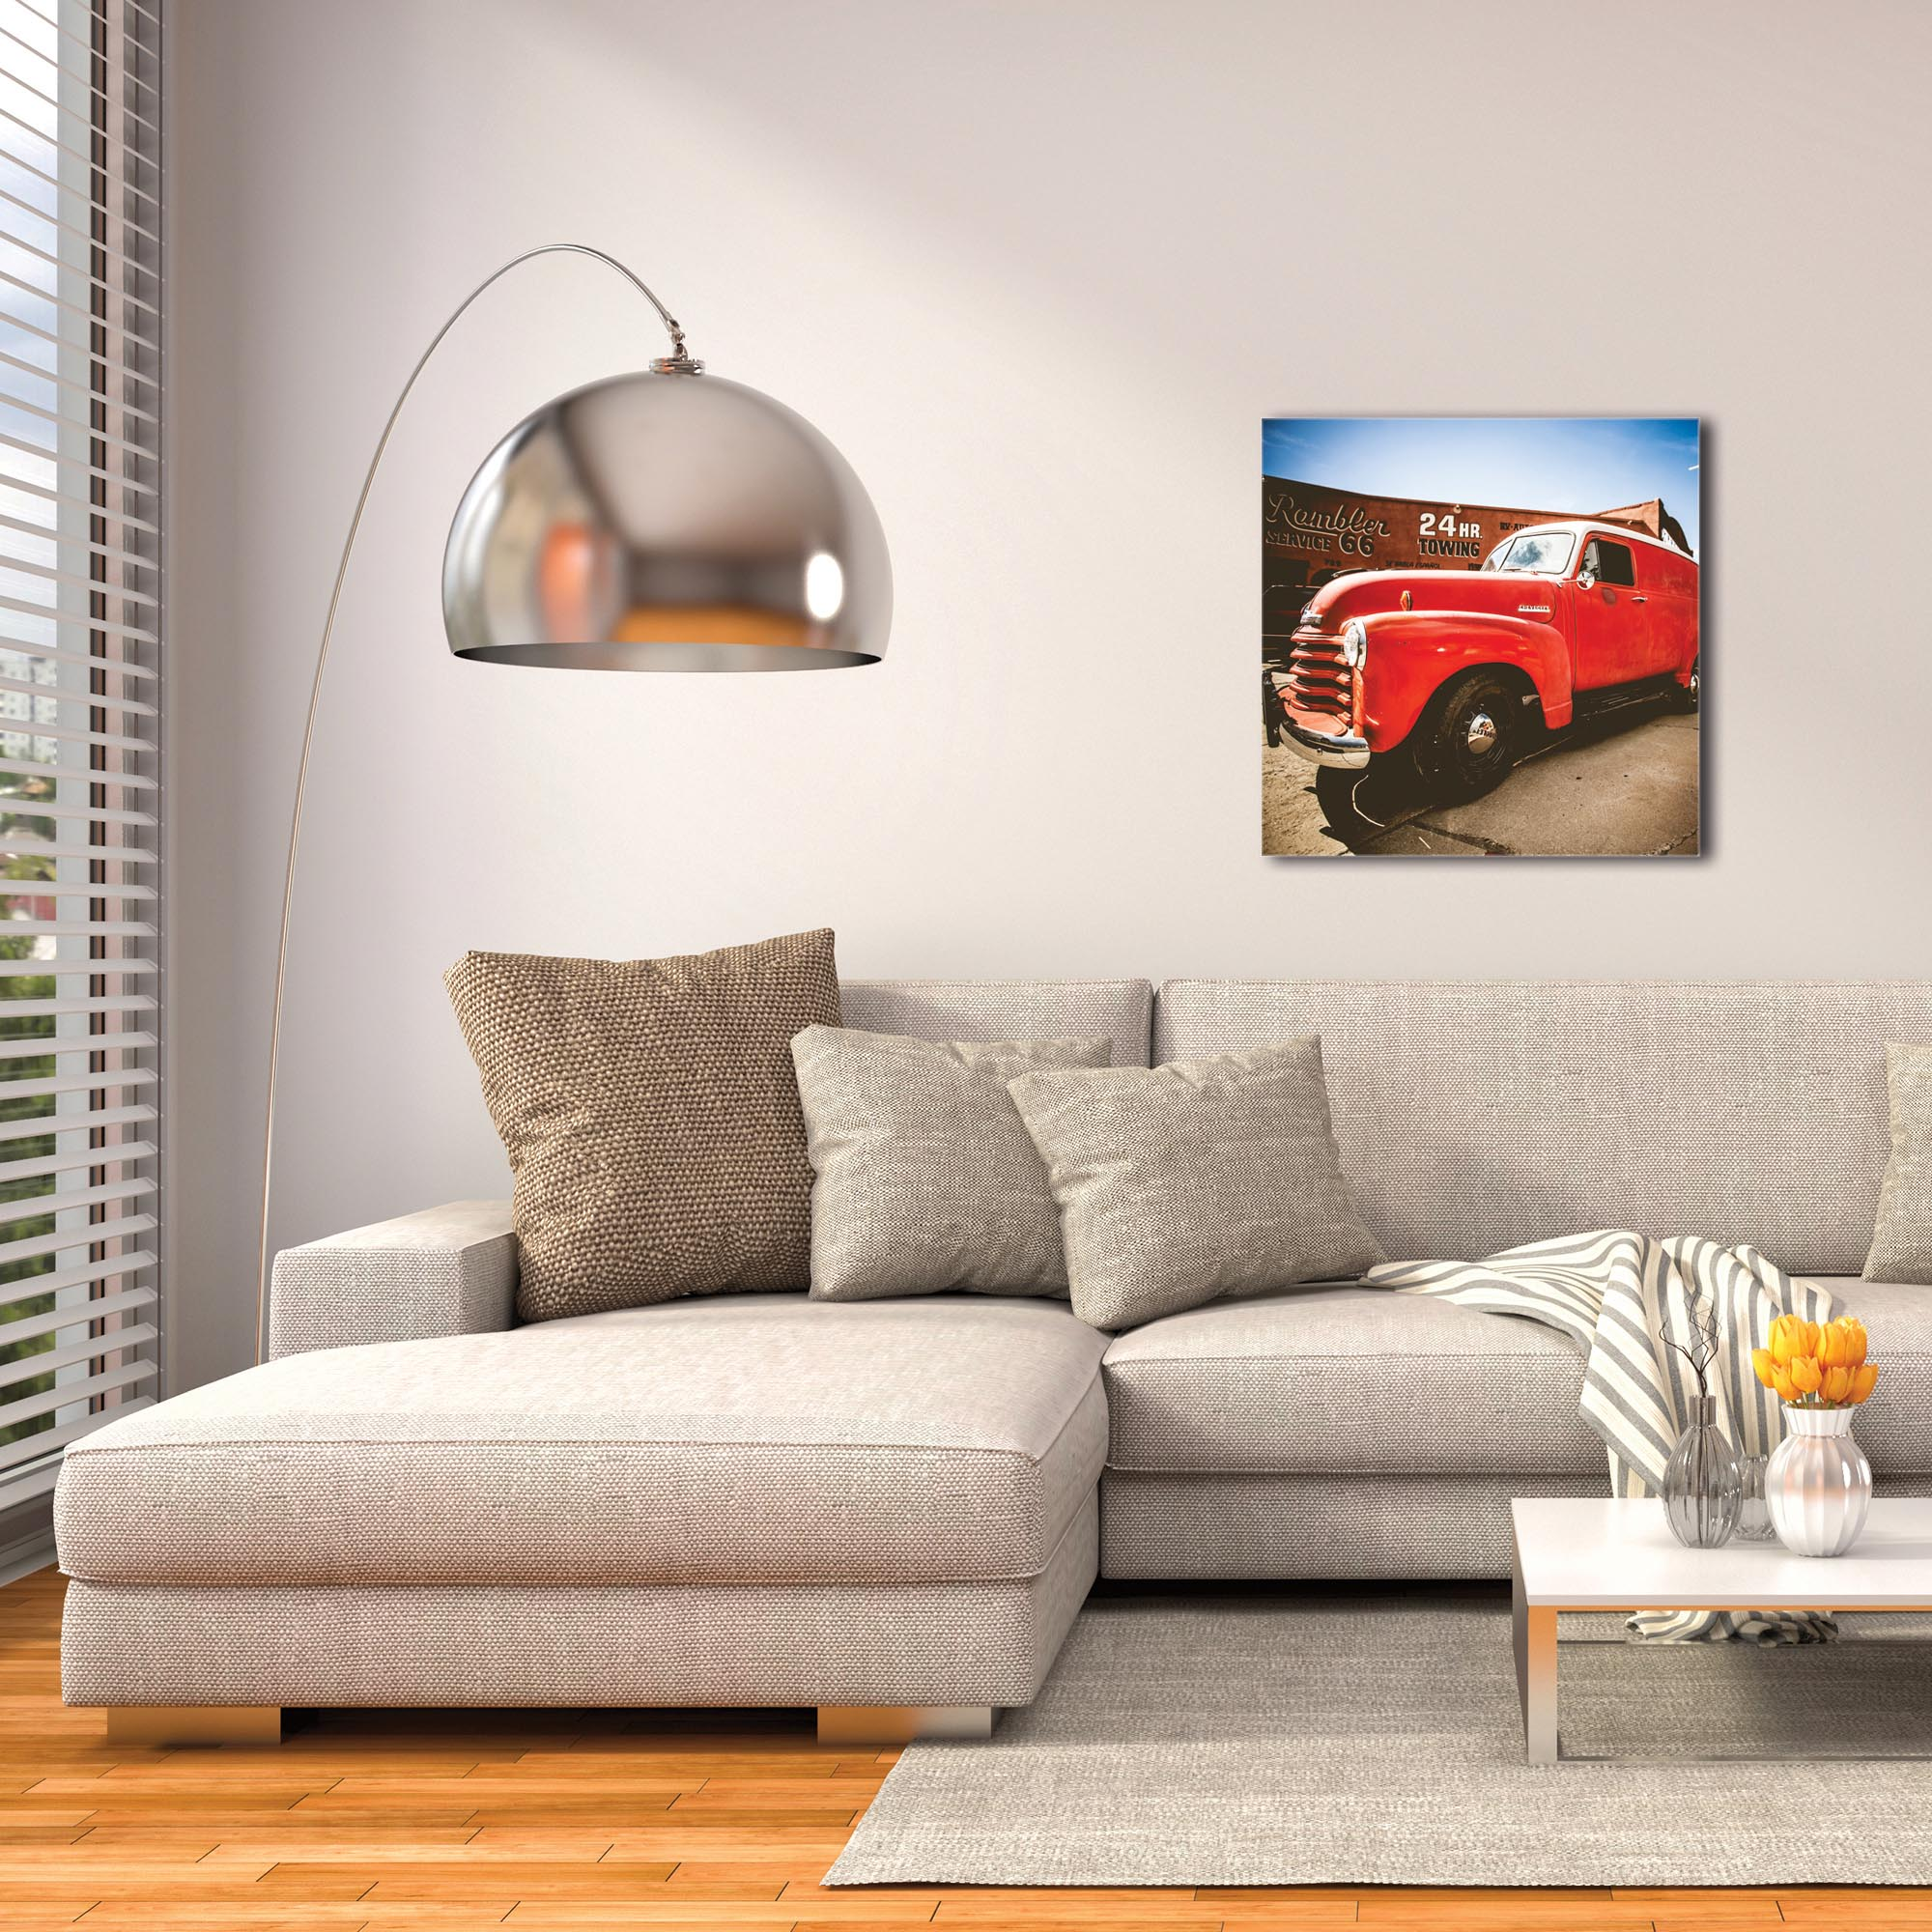 Americana Wall Art 'Big Red' - Classic Truck Decor on Metal or Plexiglass - Image 3